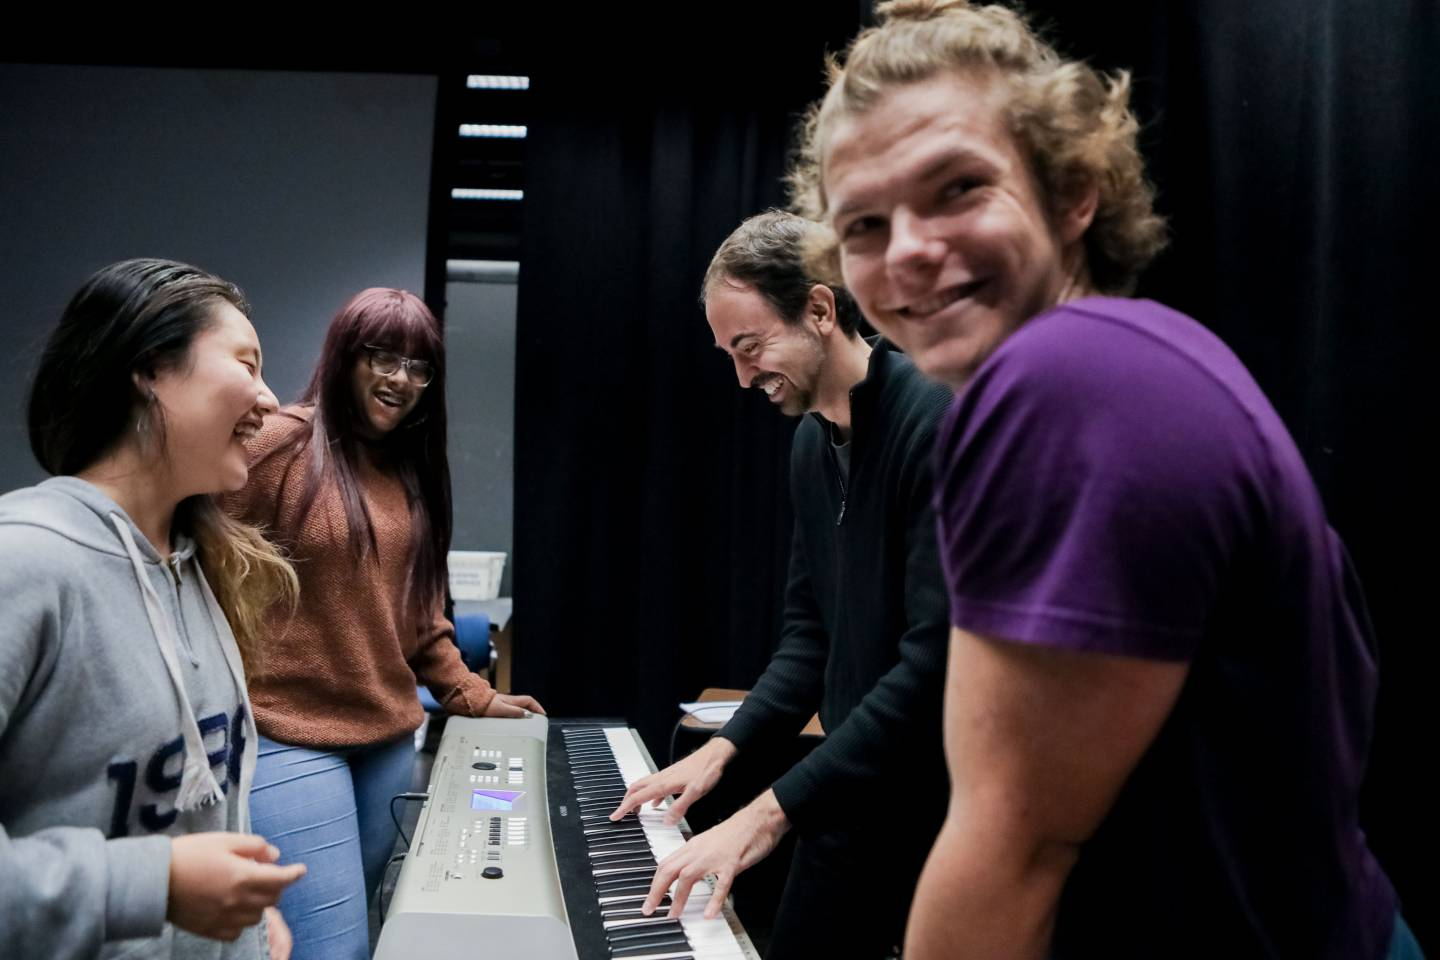 Students rehearsing at keyboard